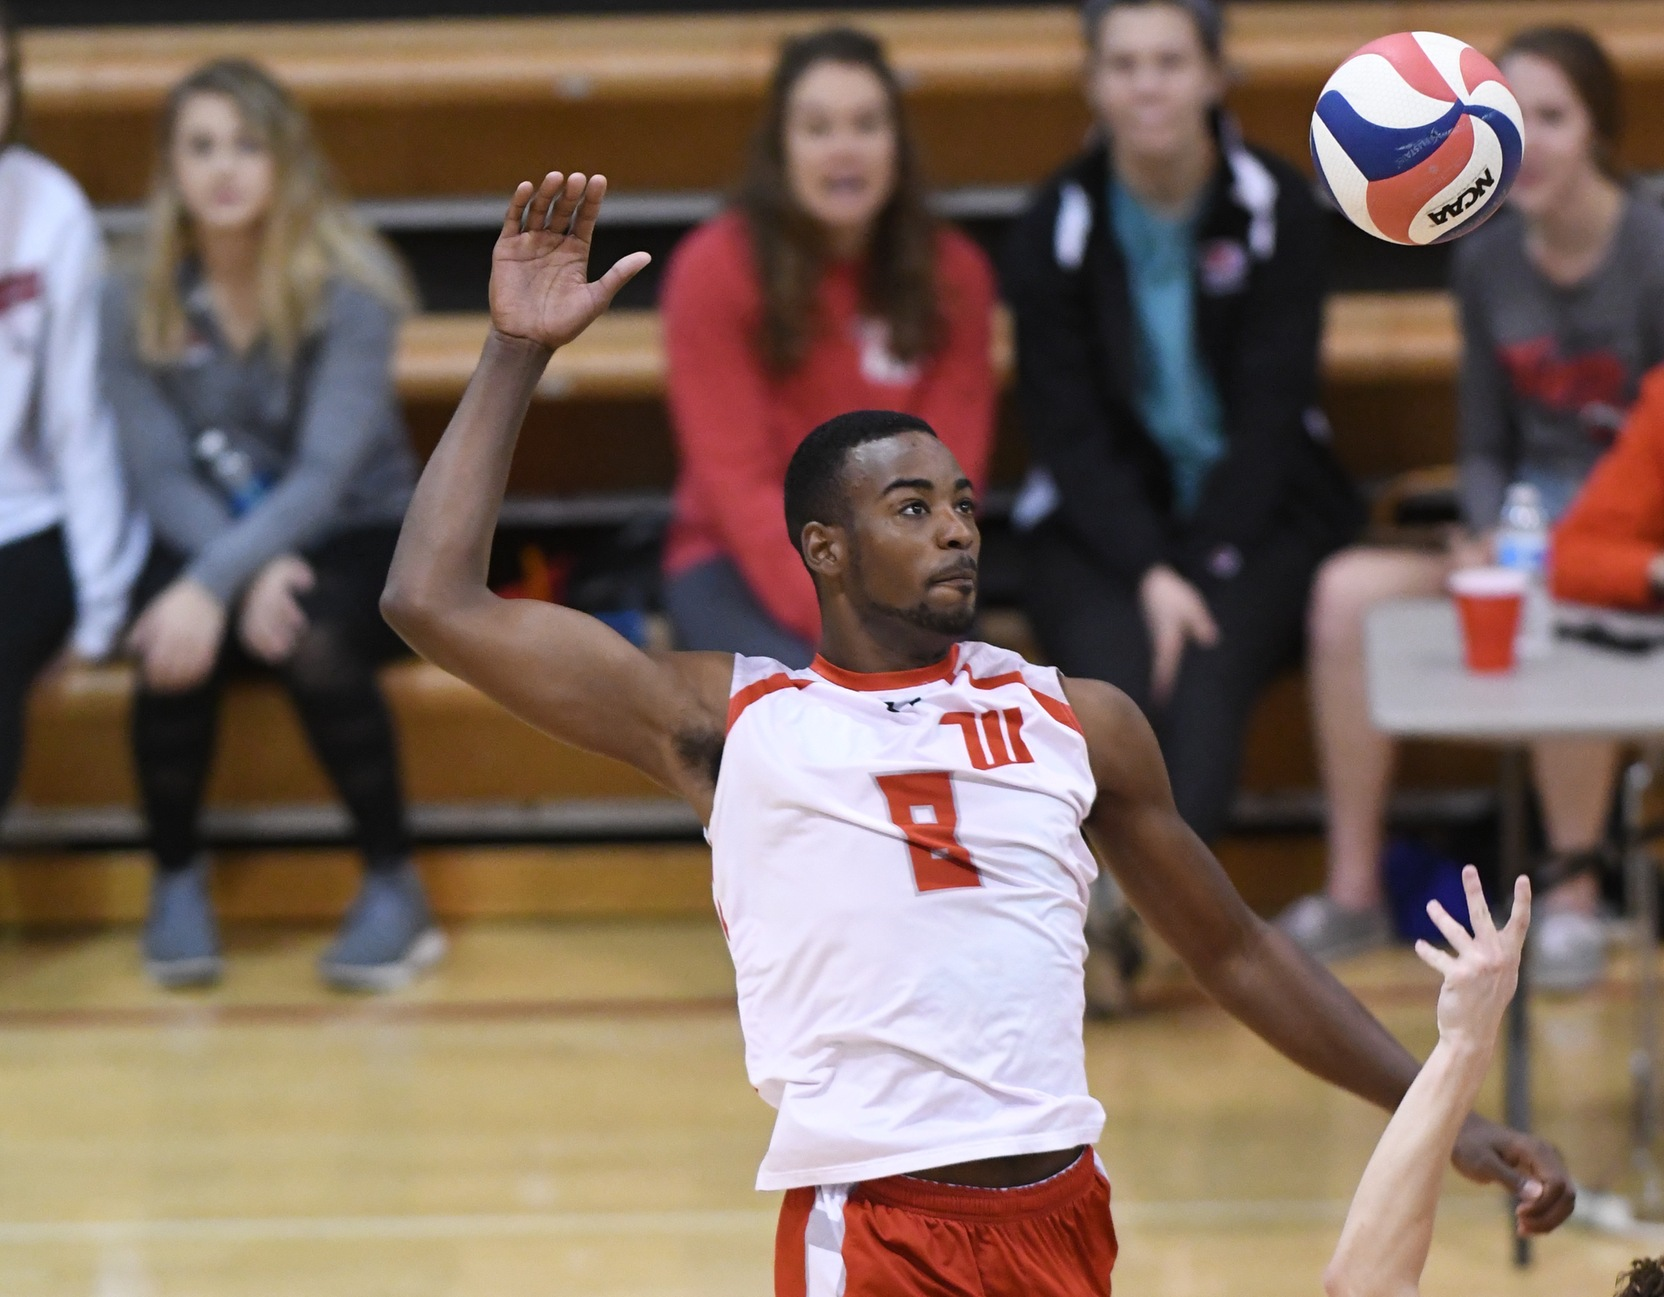 Wittenberg Men's Volleyball Opens Up Against #14 Marymount